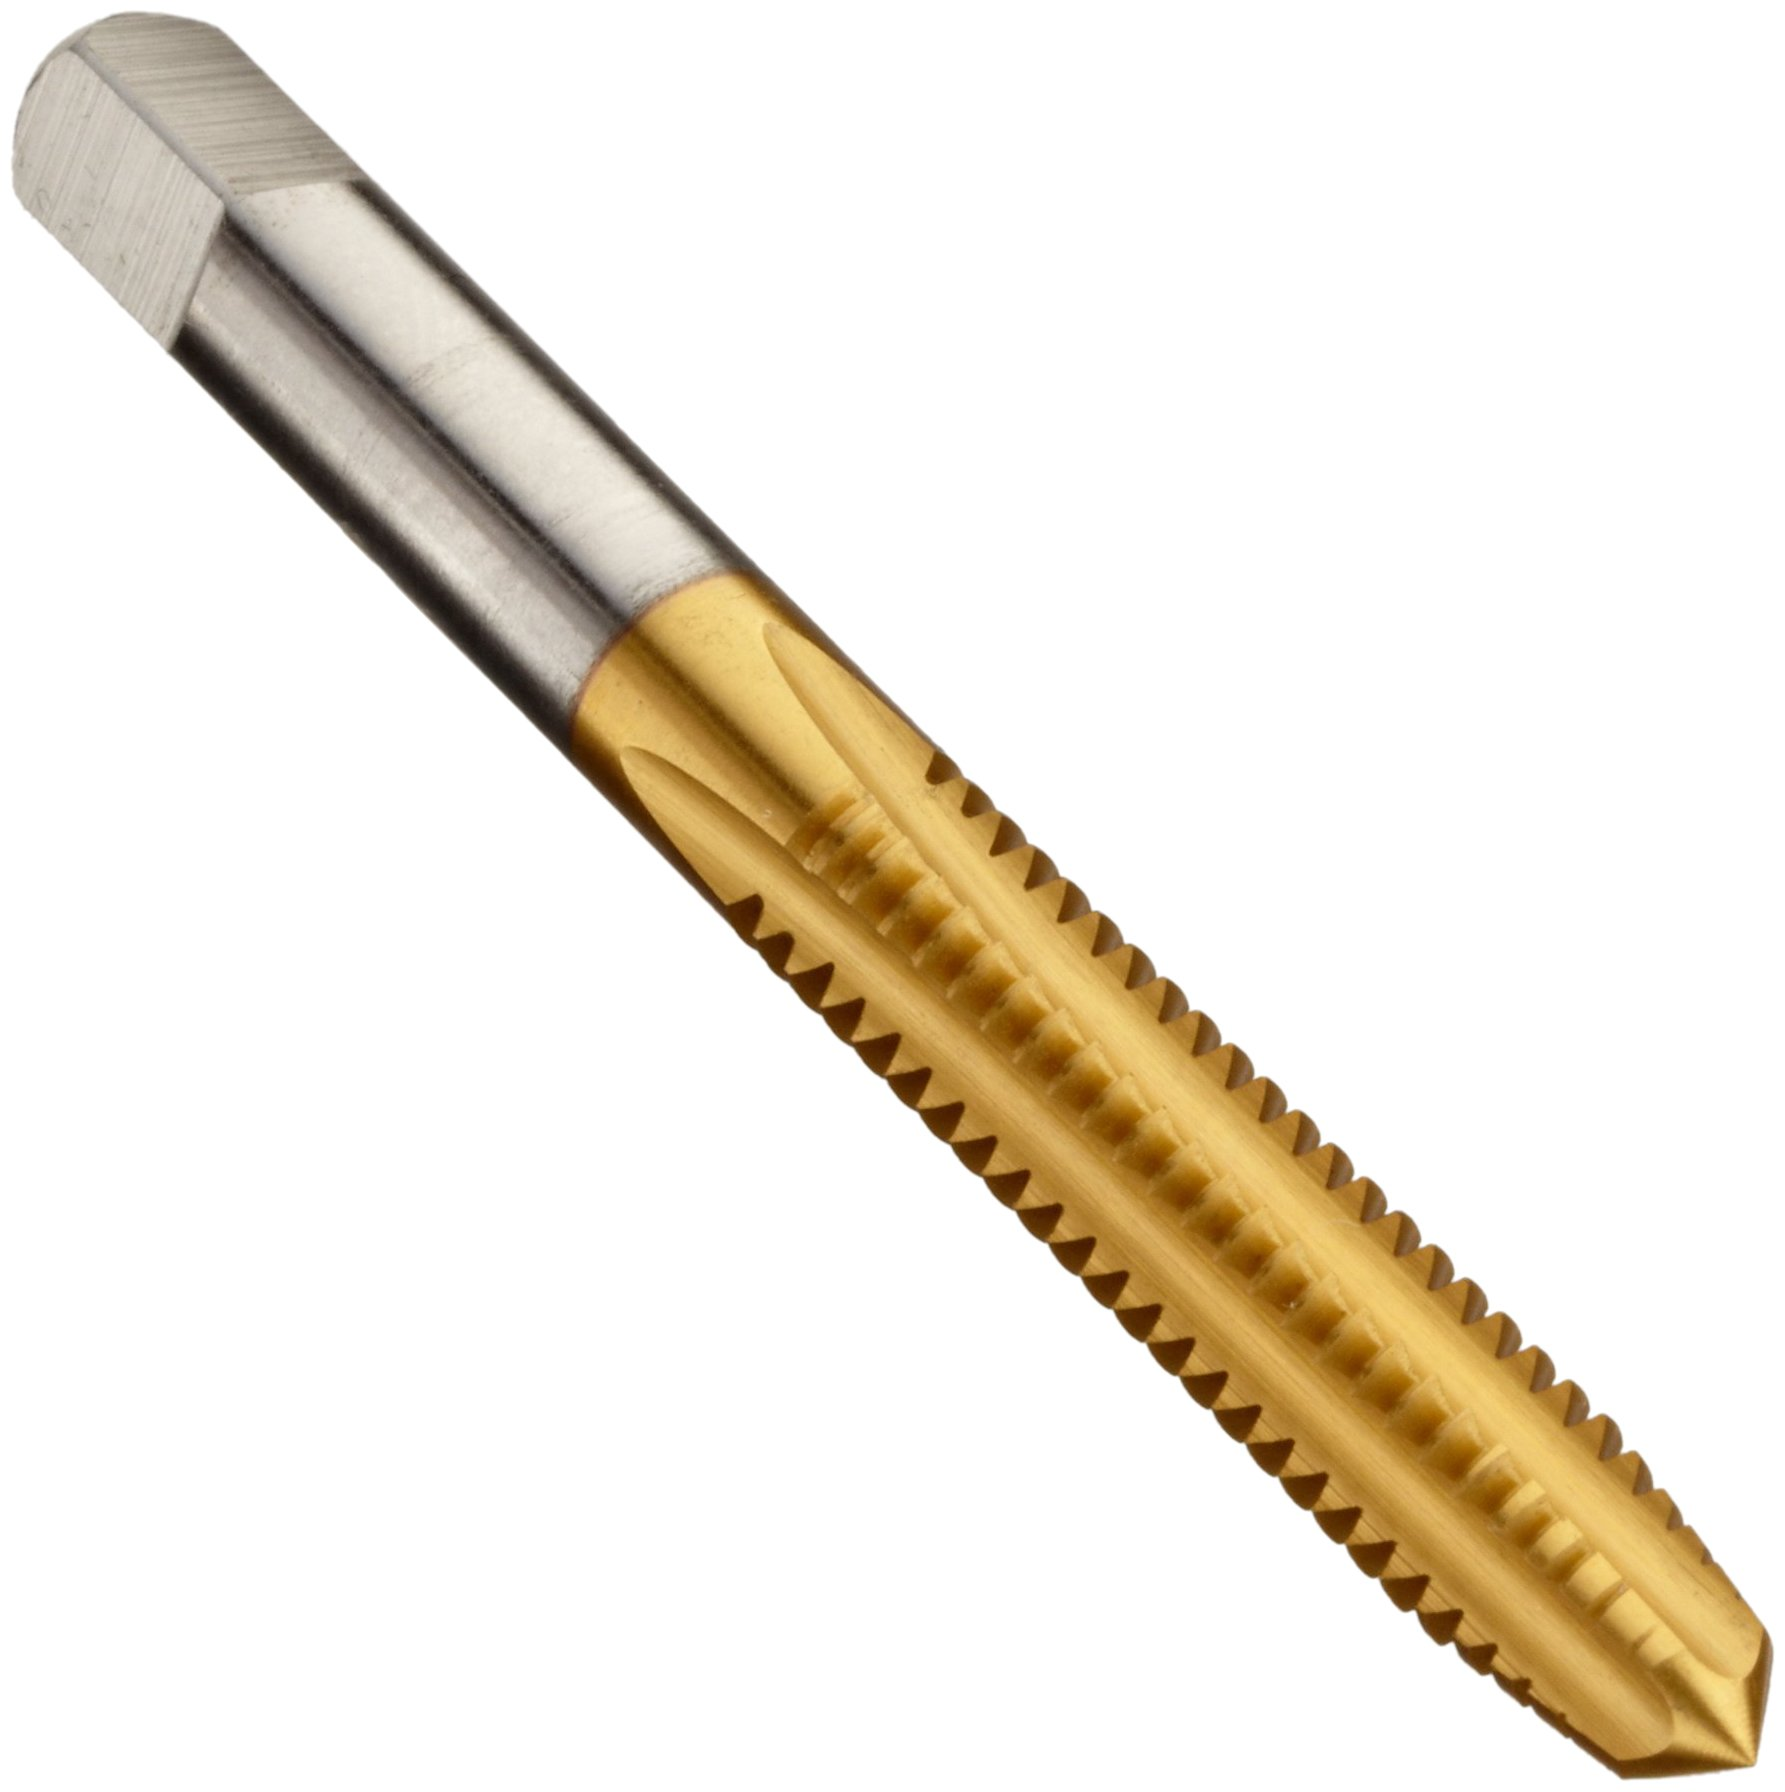 5//16-18 Thread Size 6 Oall Length Plug Chamfer UNC Uncoated High-Speed Steel Spiral Point Tap Union Butterfield 1534NE Round Shank with Square End Bright Finish